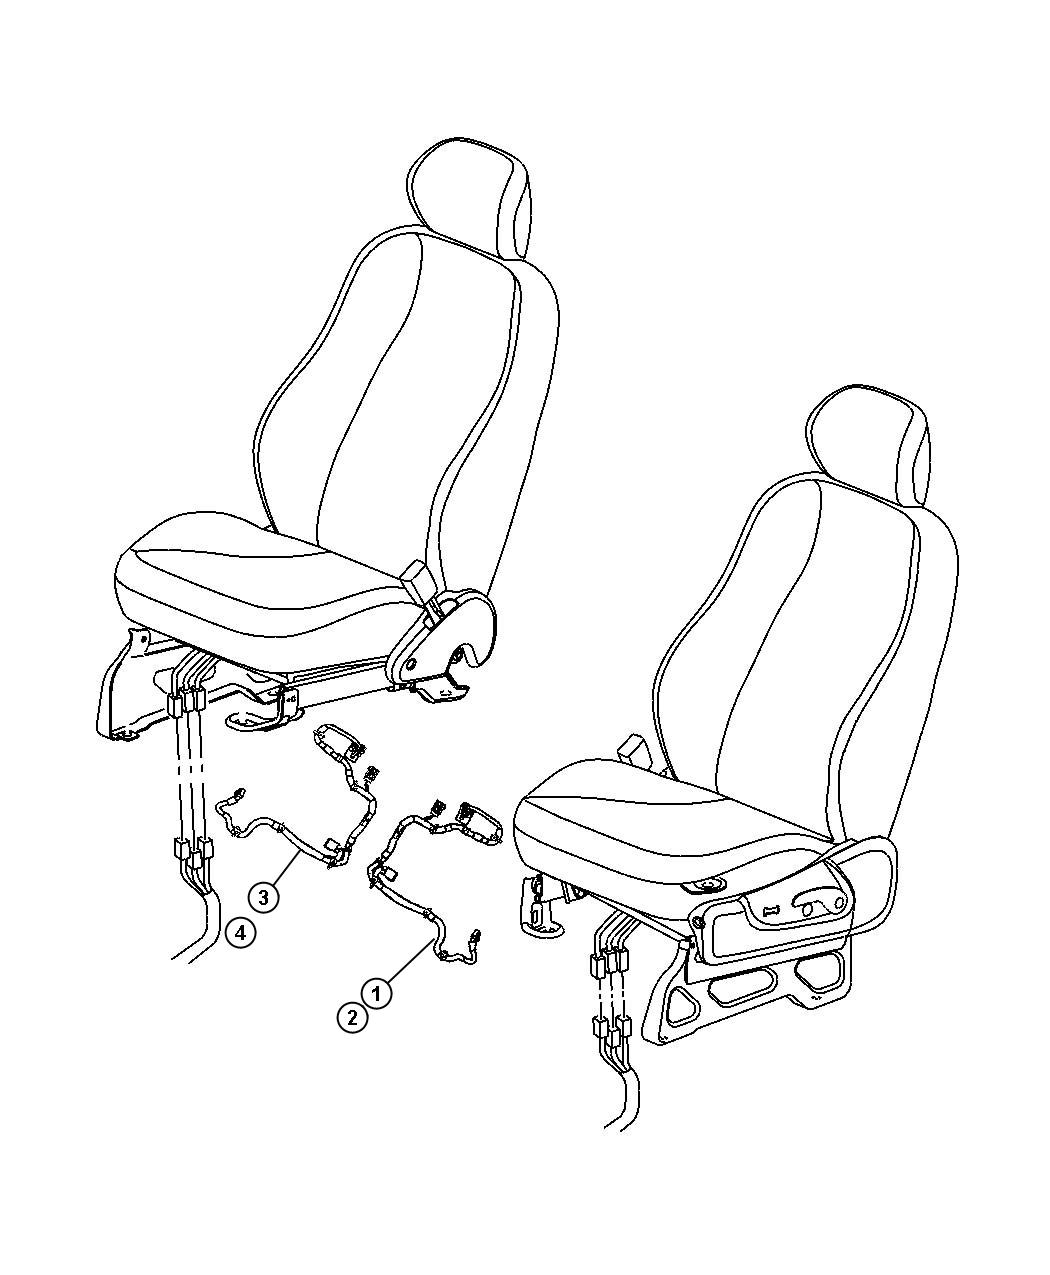 Jeep Liberty Wiring Power Seat Export Right Trim